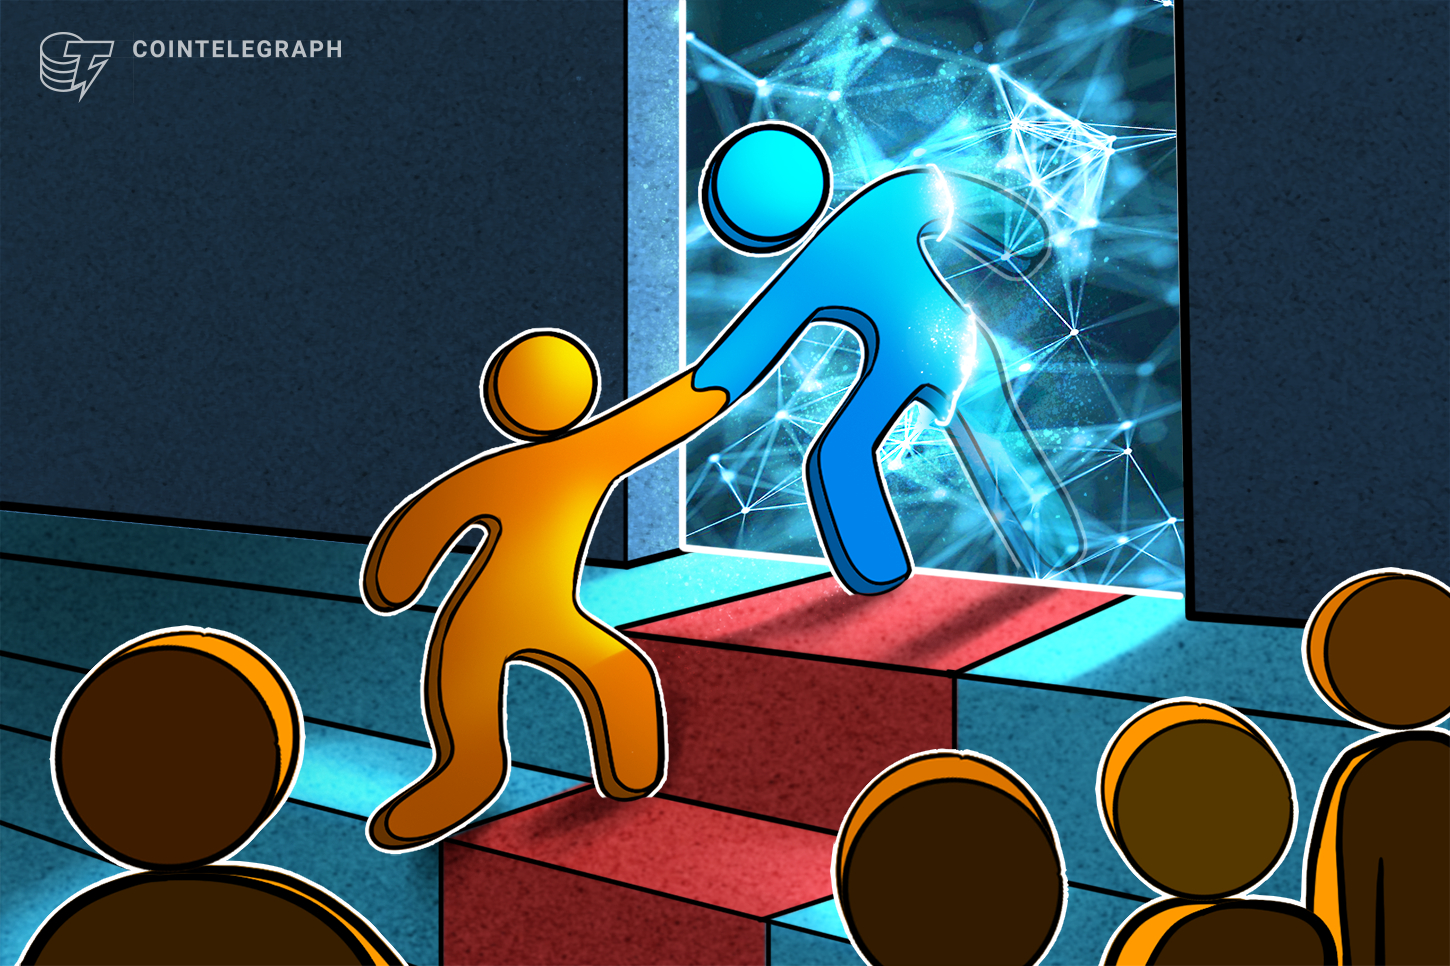 Fintech Startup SoFi to Roll Out Crypto Trading Via Partnership With Coinbase